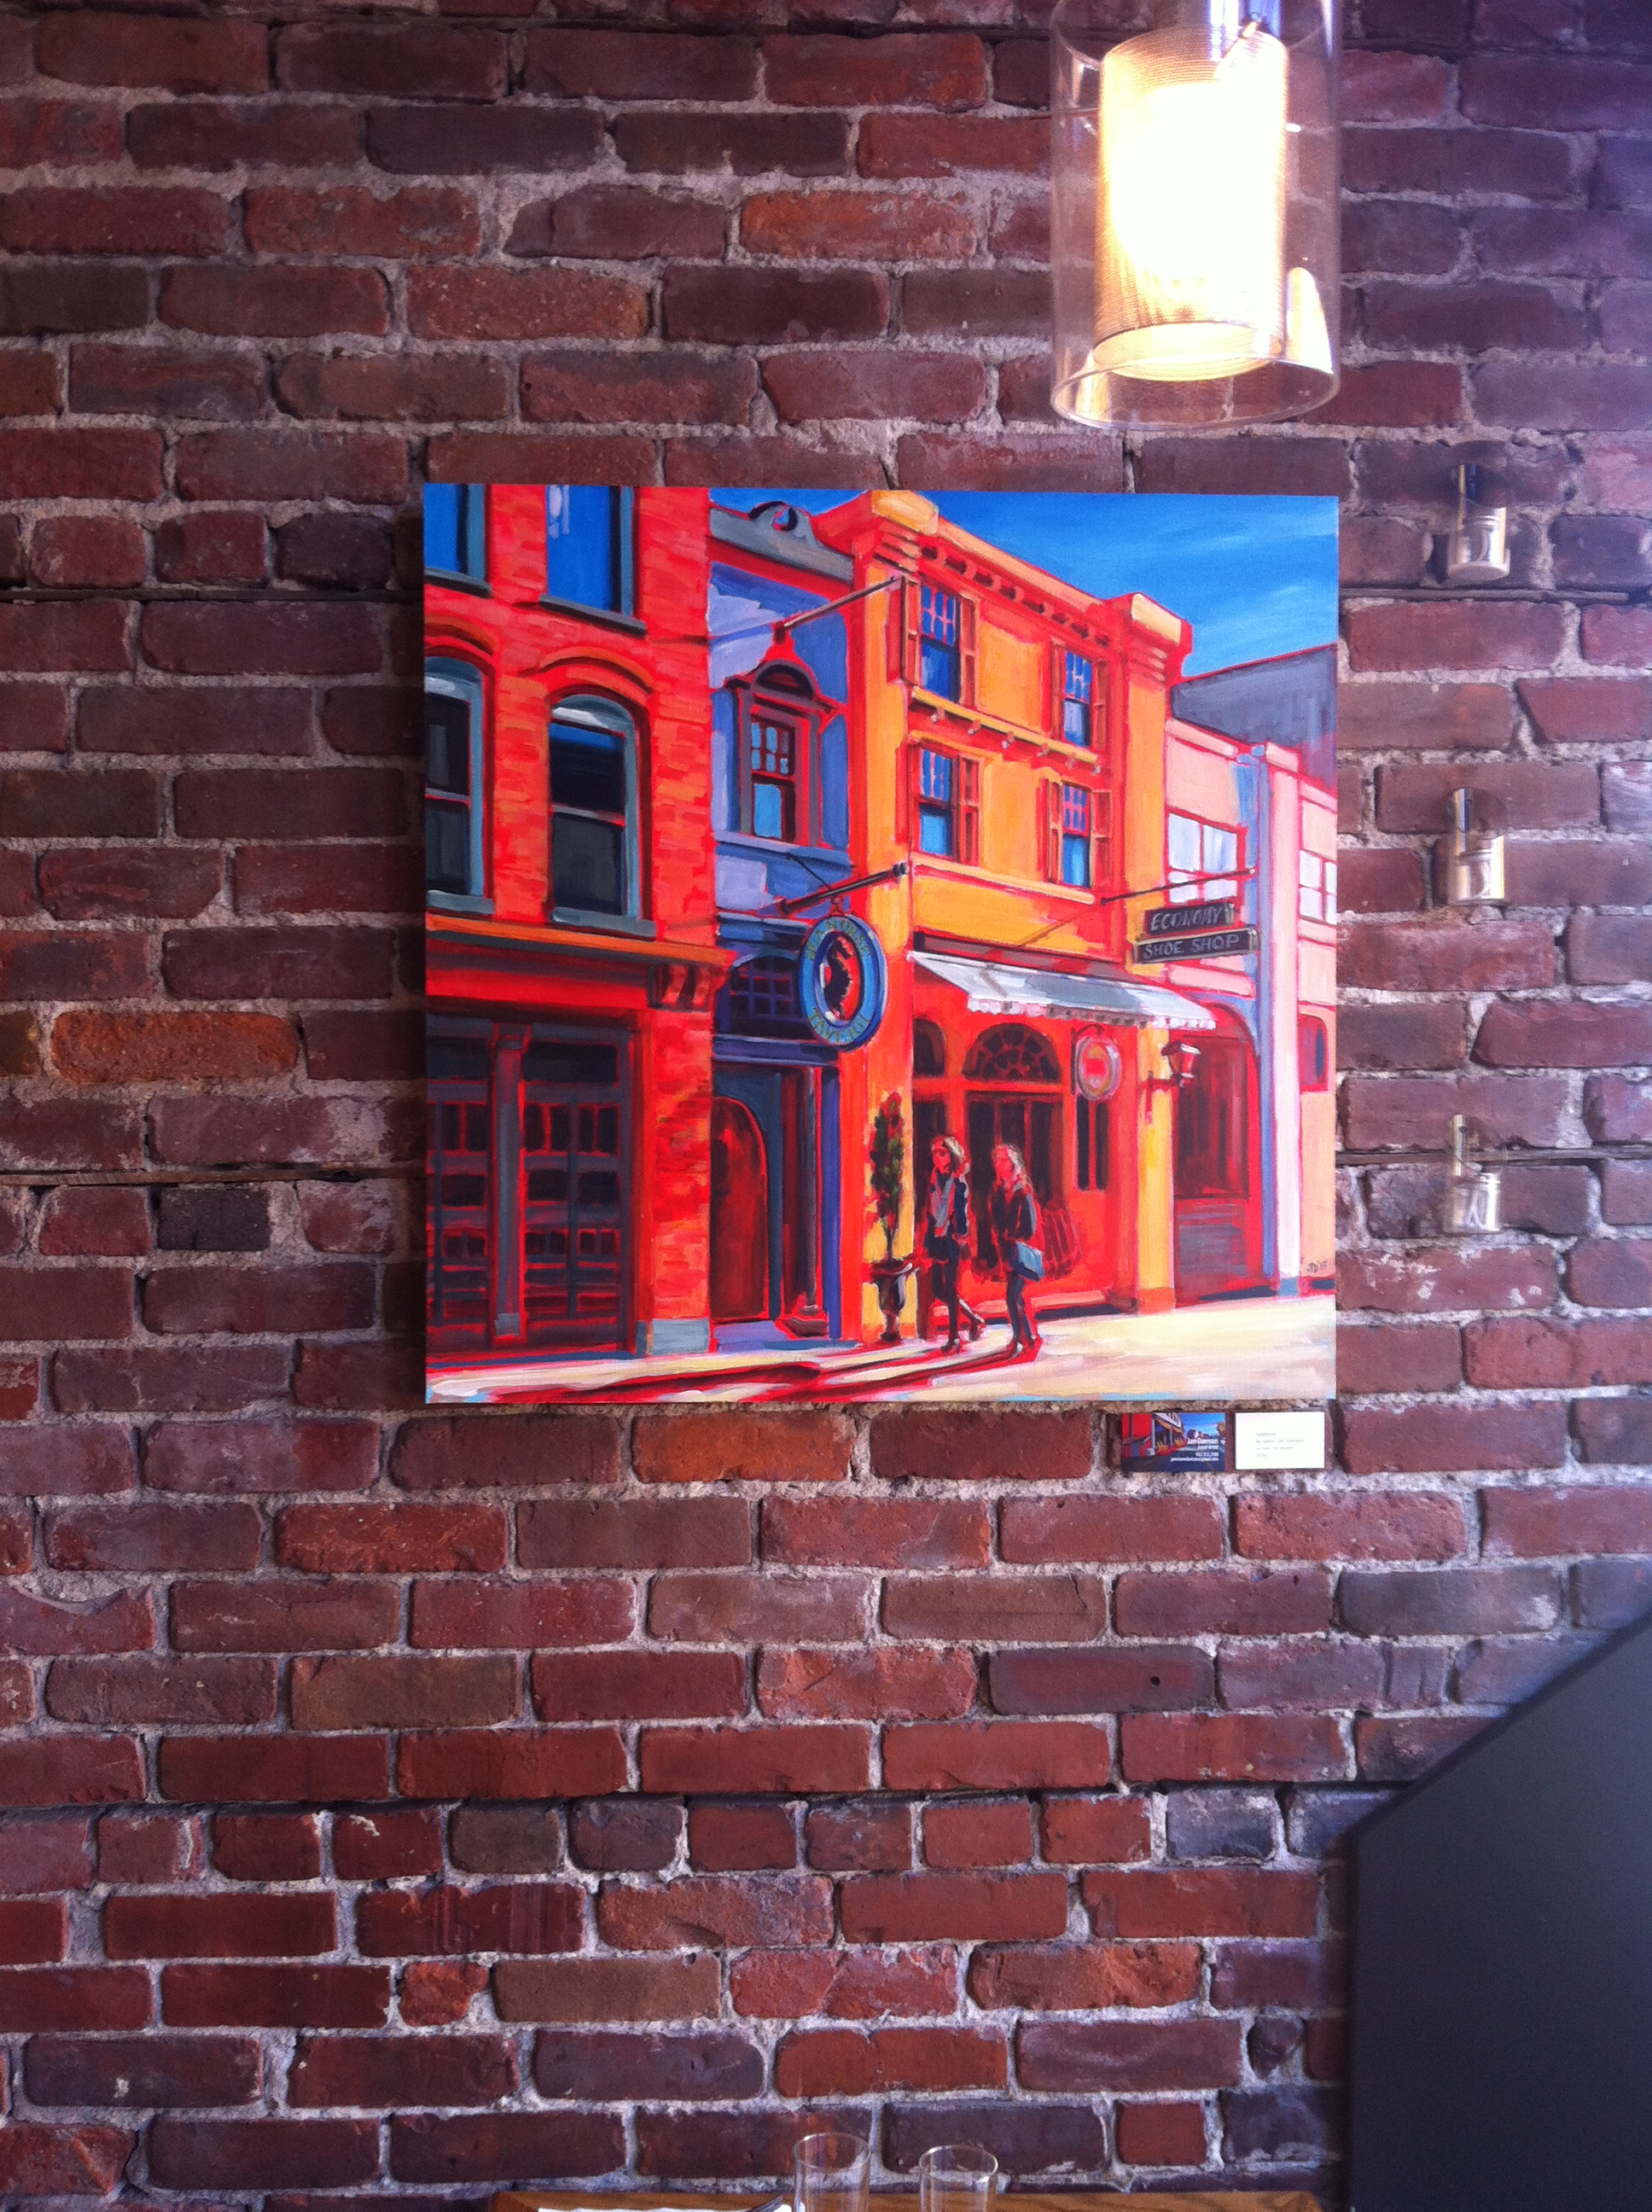 Argyle Street, arcylic on board, 30x30_ - hanging at Morris East restuarant, Halifax, NS